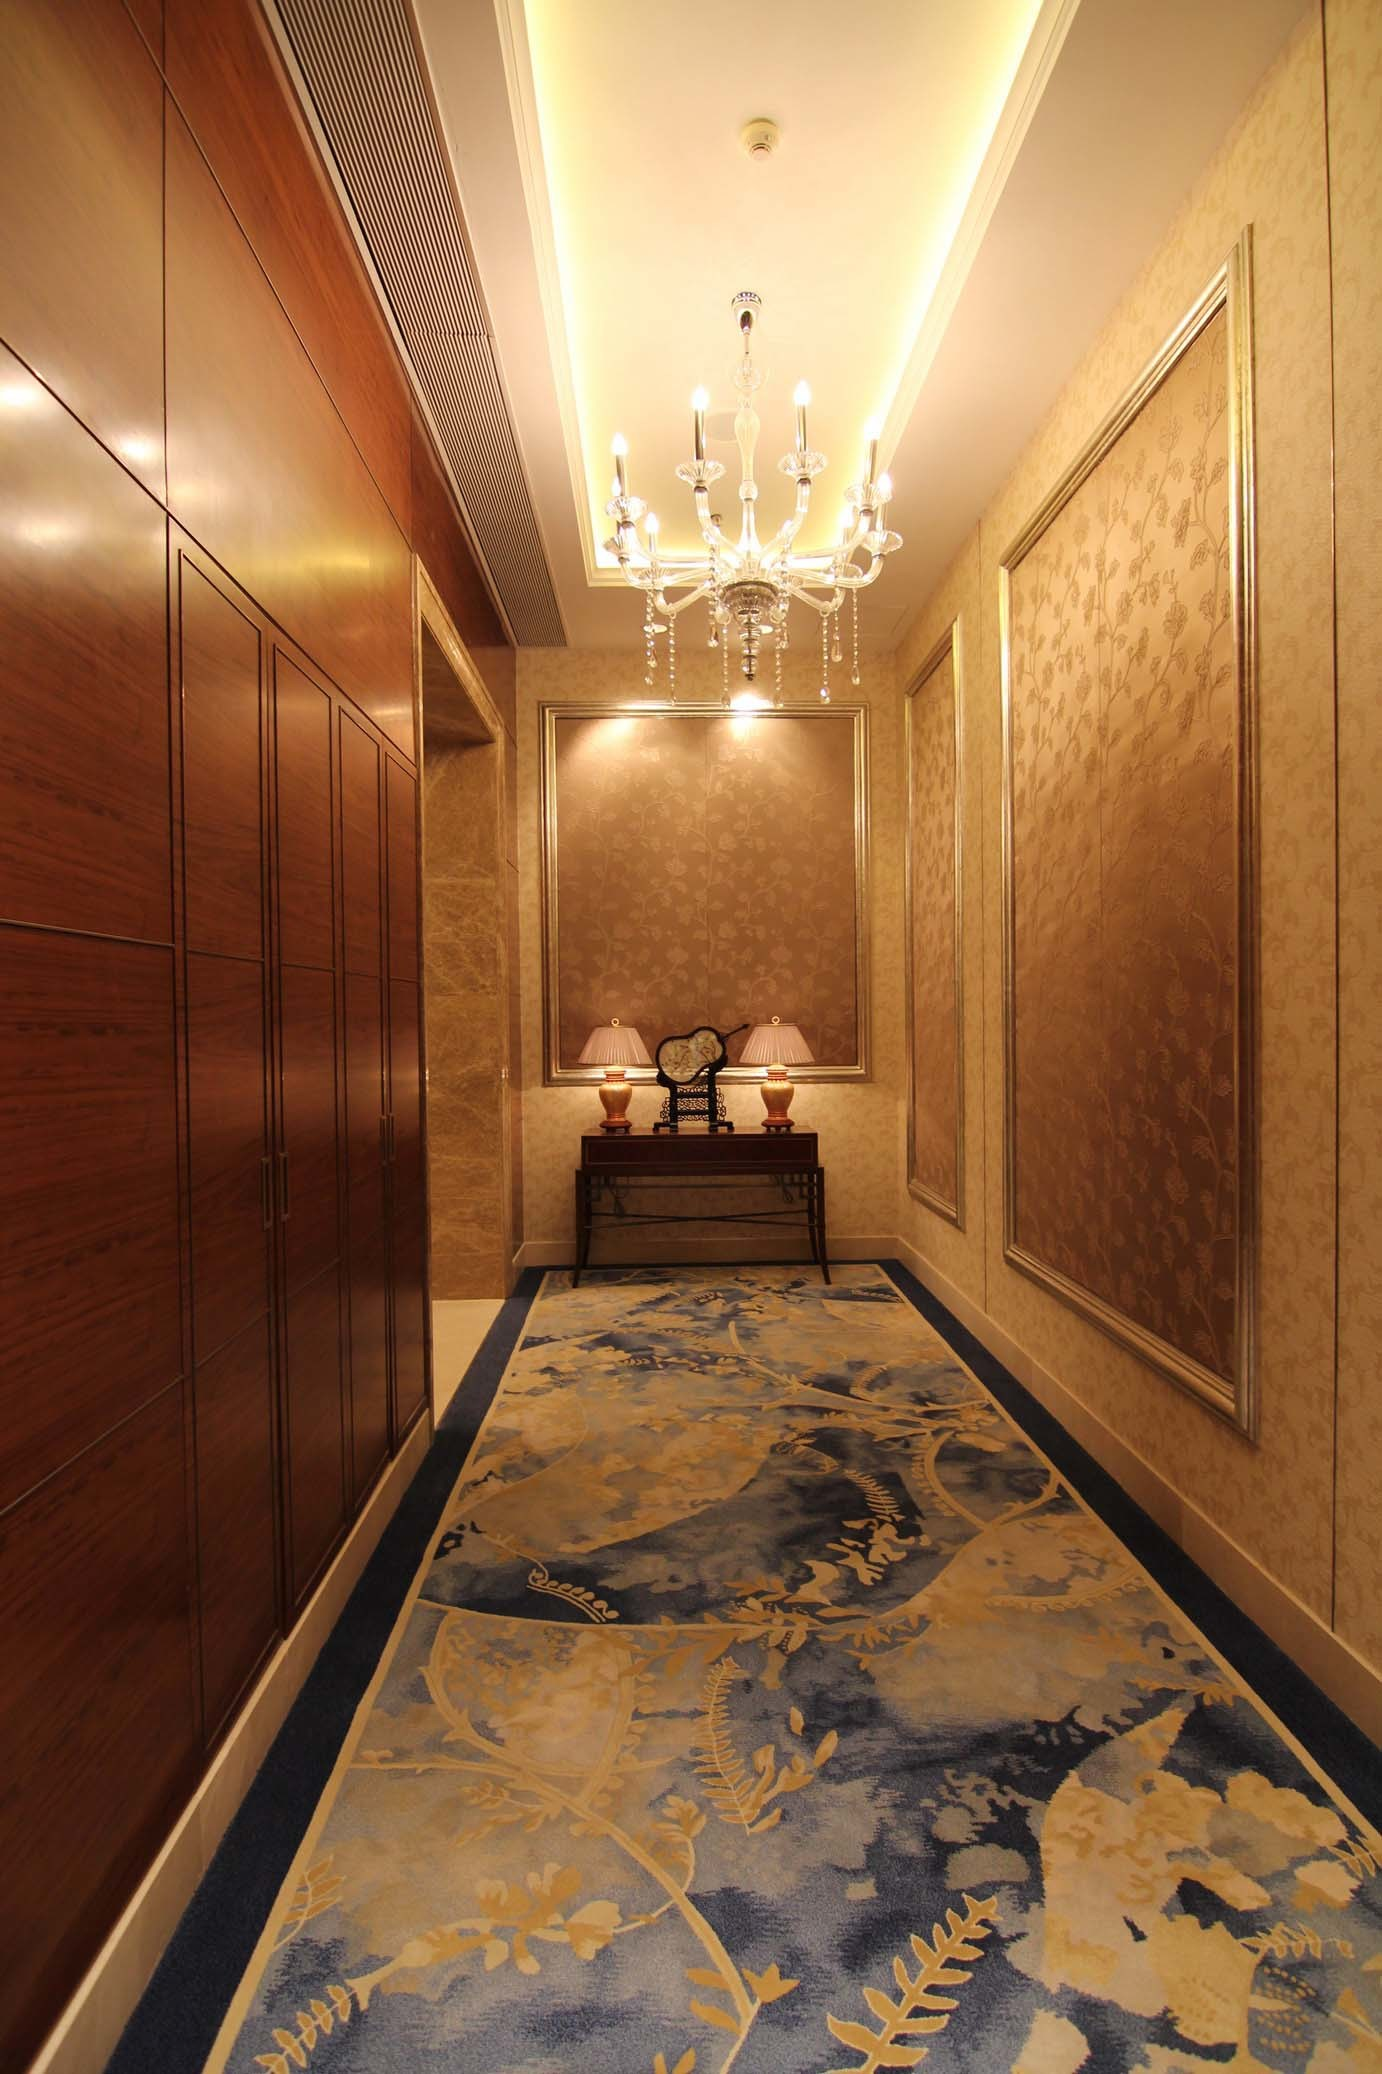 China Hand Tufted Shangri La Hotel Corridor Carpet